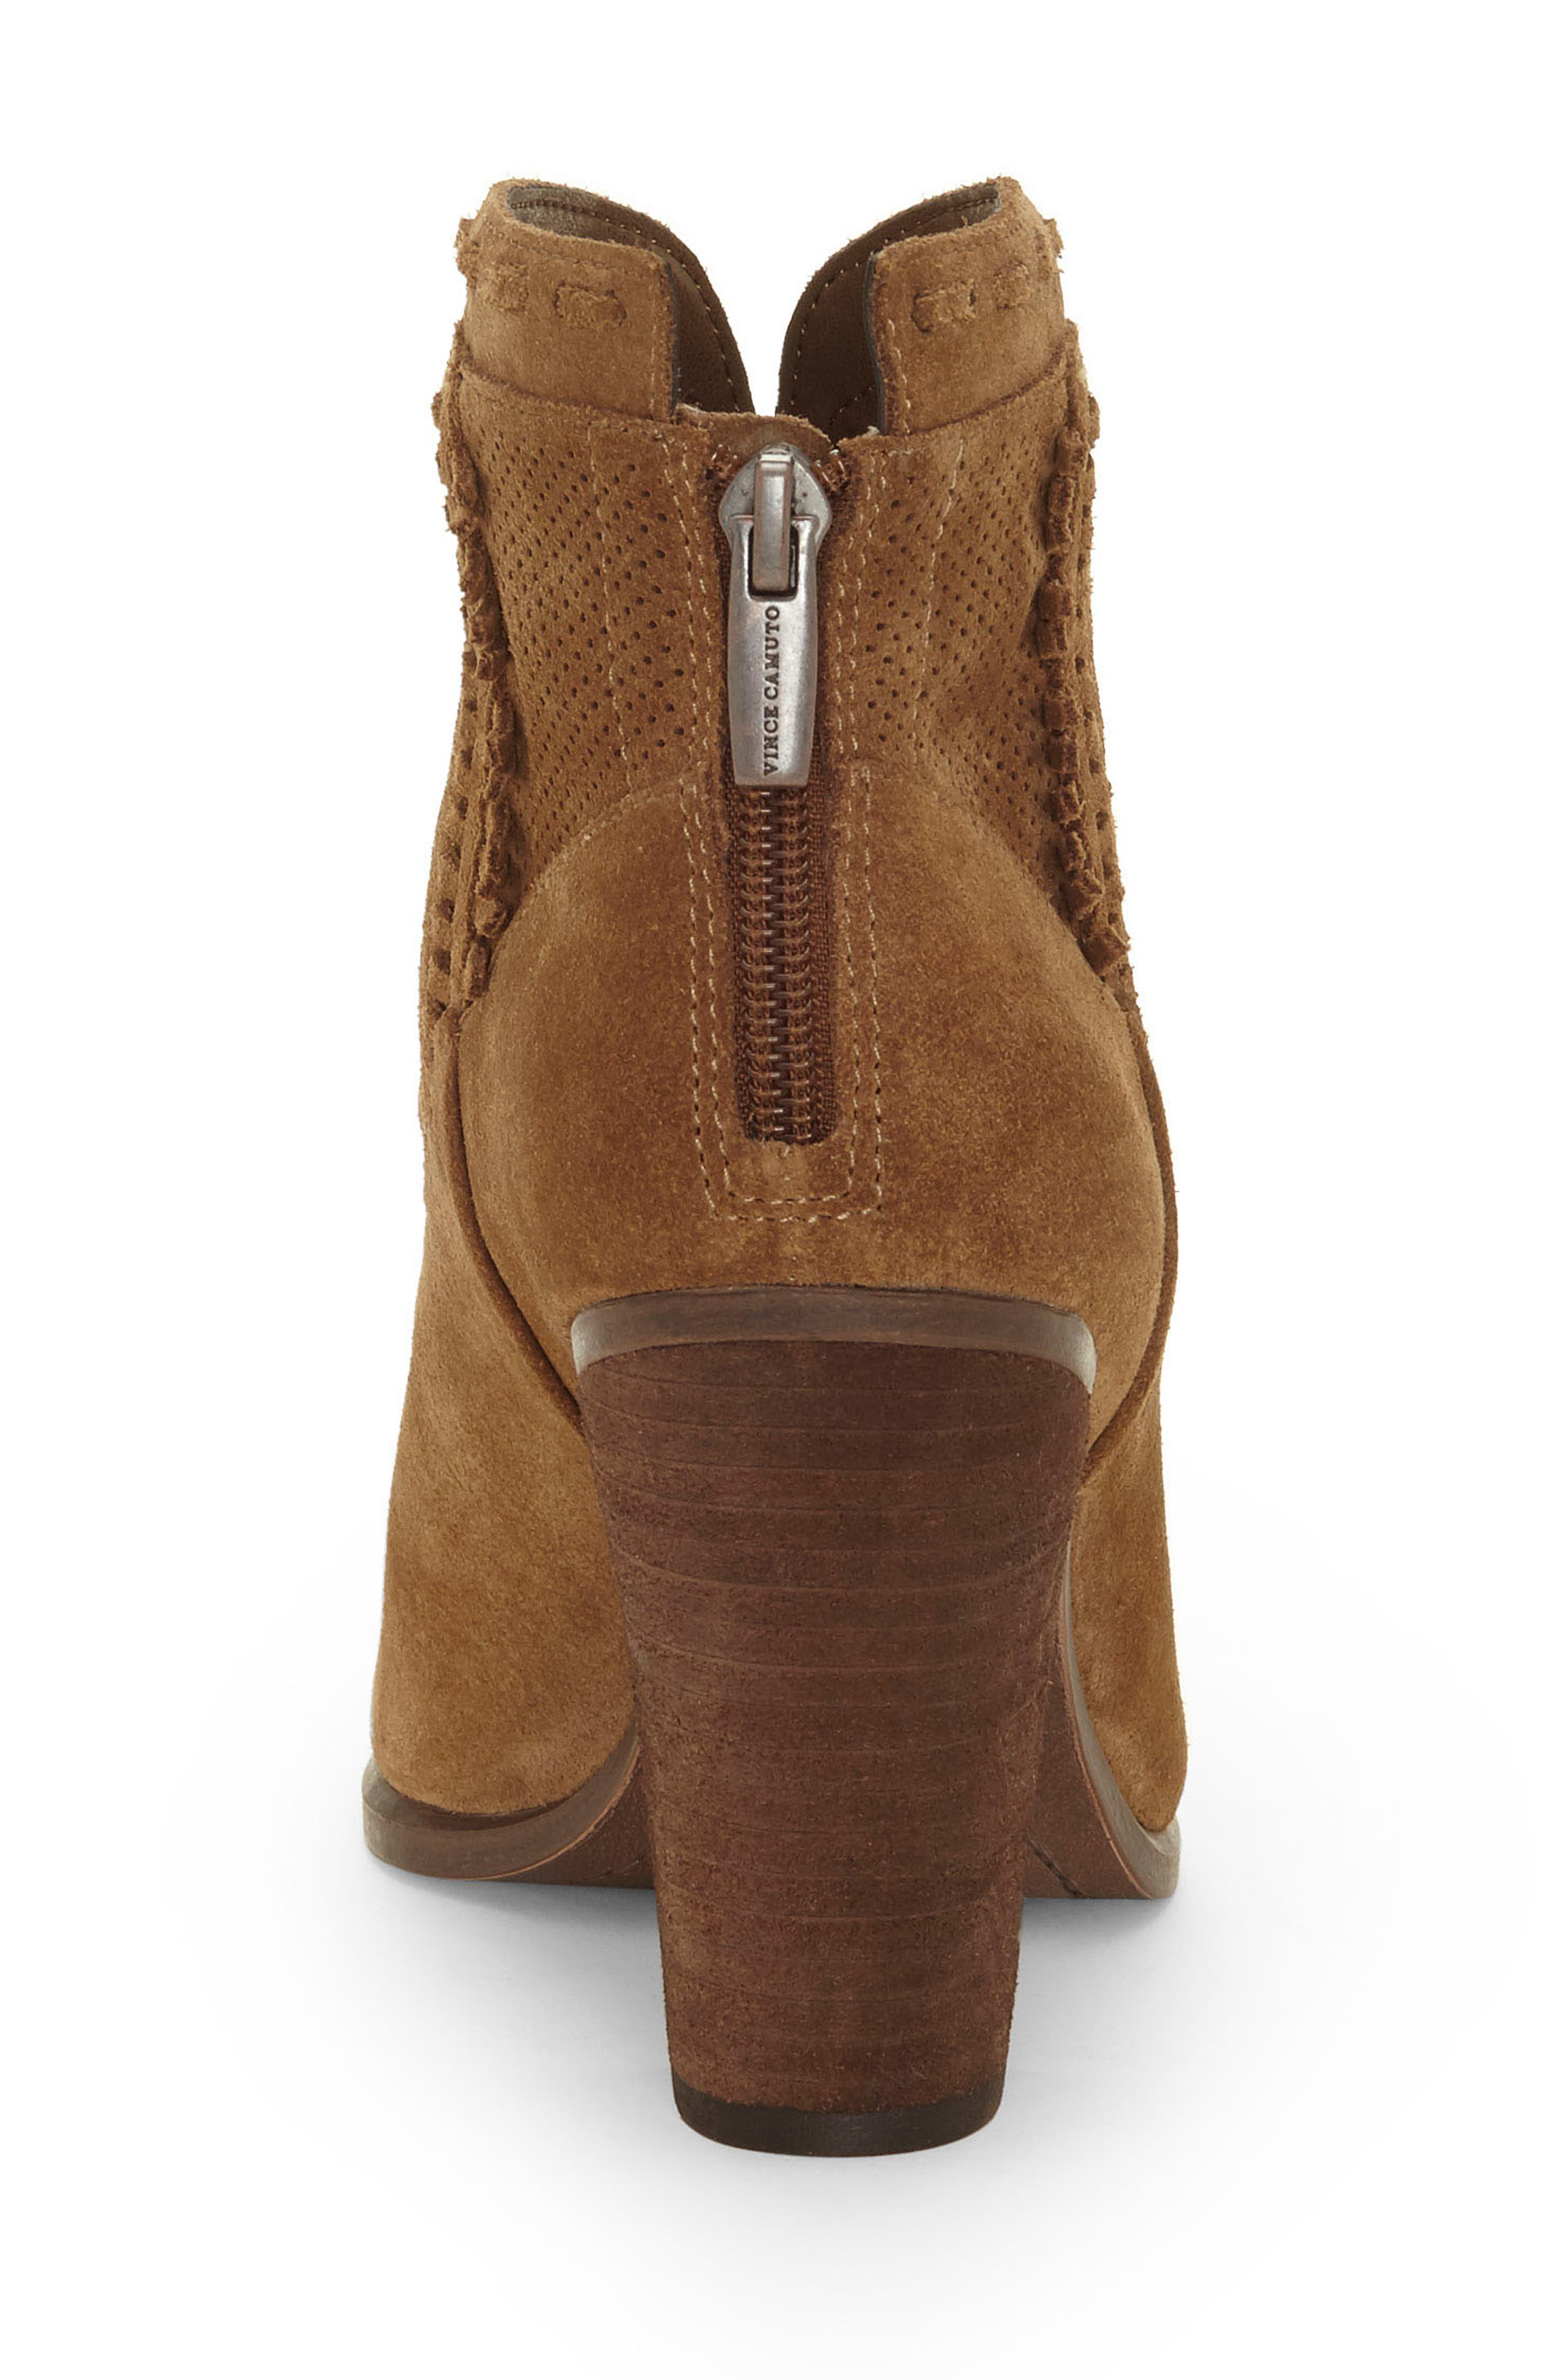 VINCE CAMUTO, Fretzia Perforated Boot, Alternate thumbnail 6, color, TREE HOUSE NUBUCK